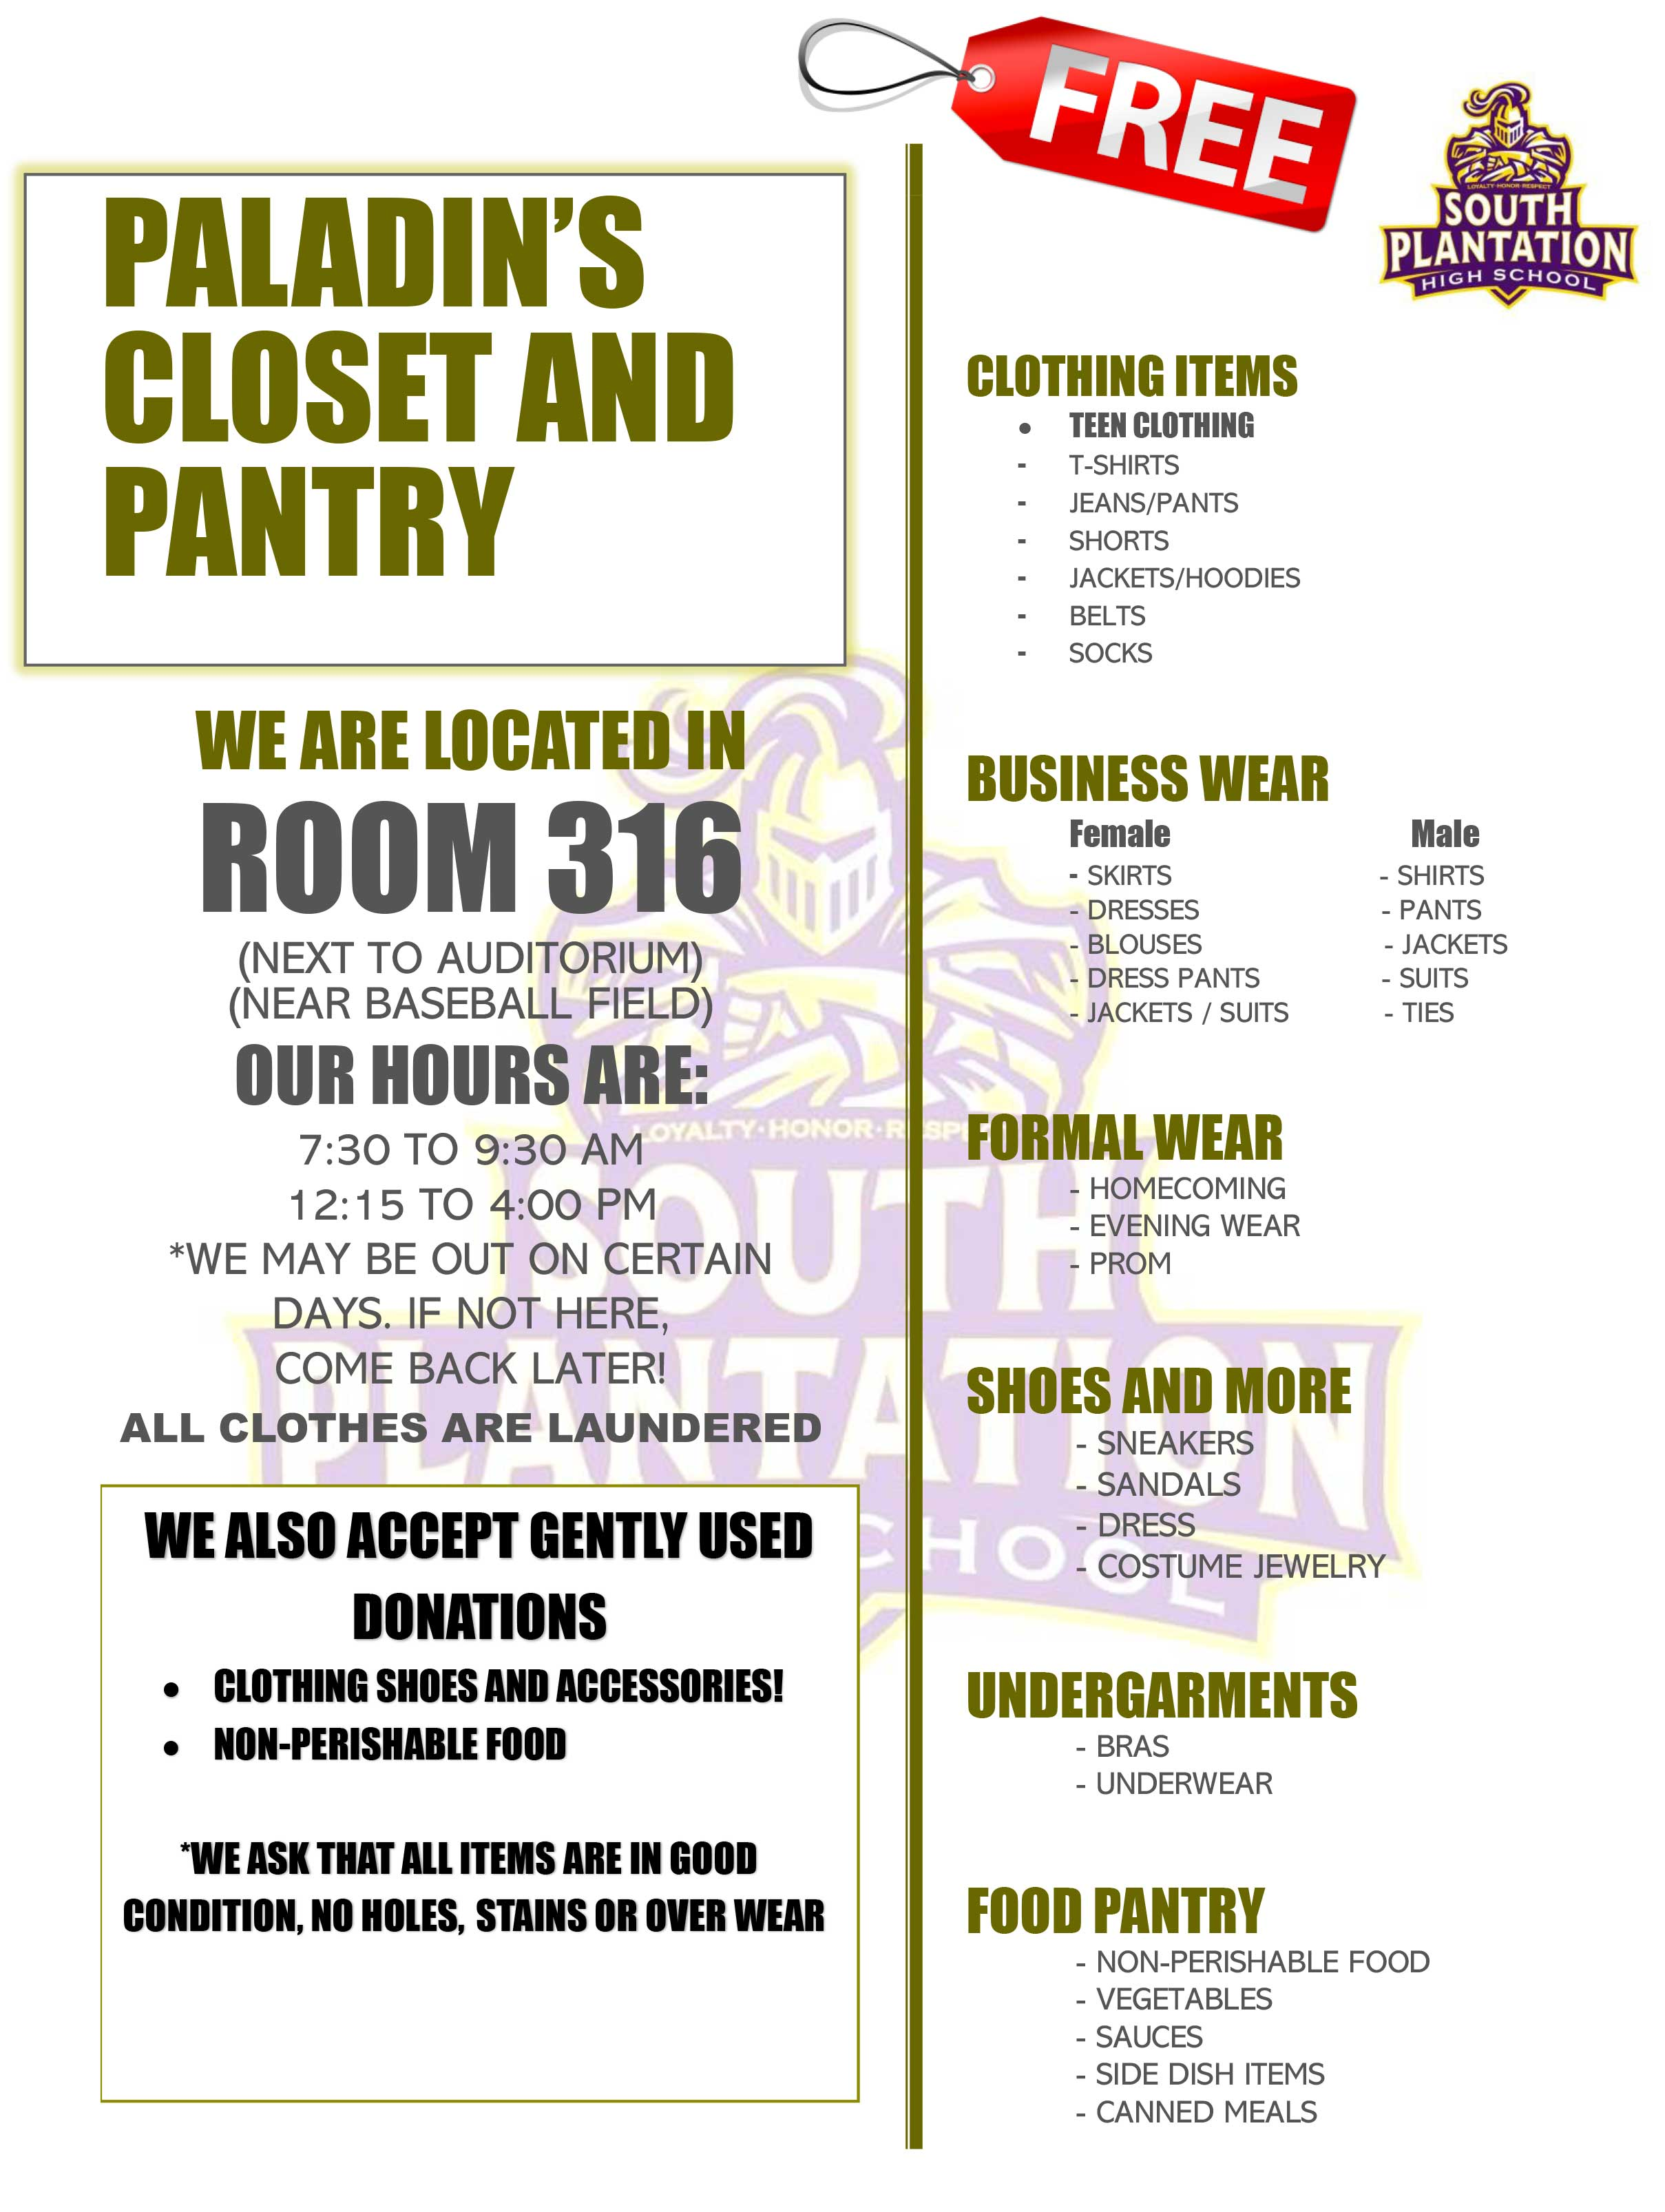 Paladin's Closet and Pantry